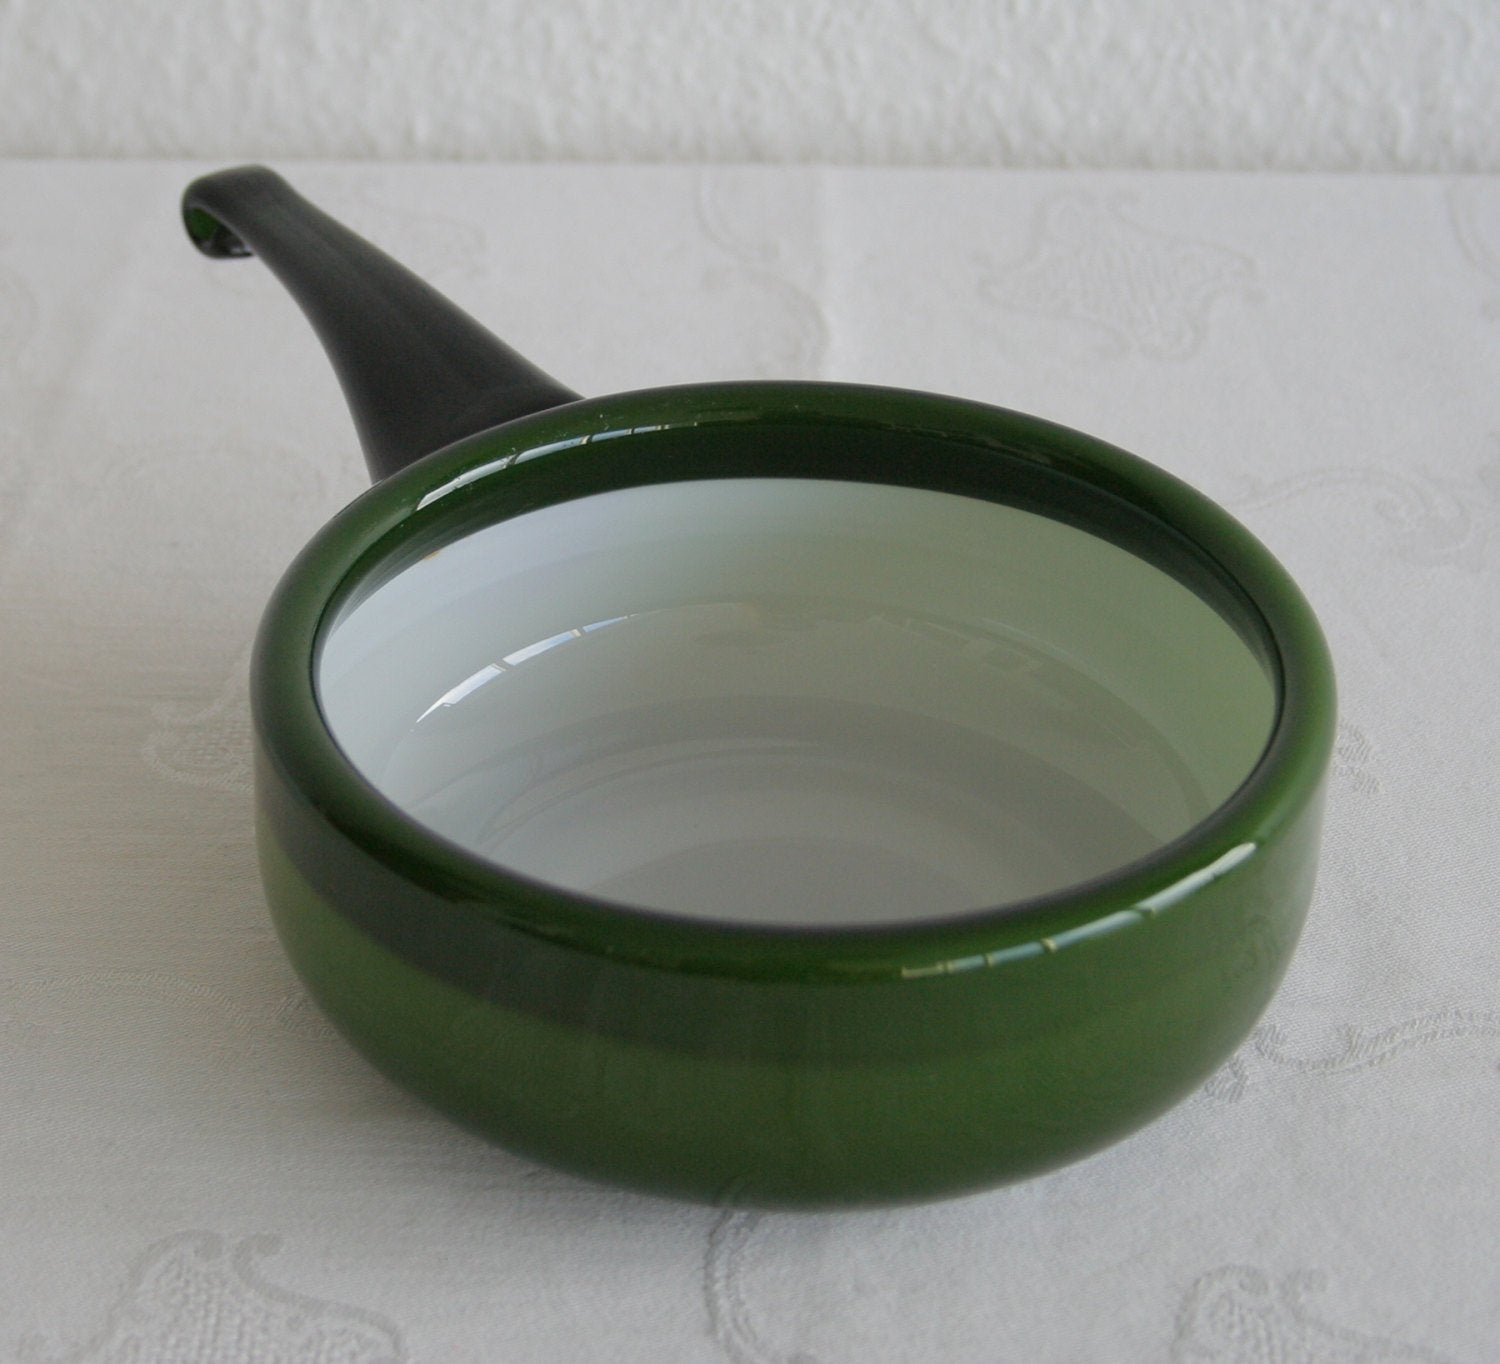 MICHAEL BANG Kastrup Holmegaard PALET Large Emerald Green Handled Cased Glass Bowl - Mollaris.com